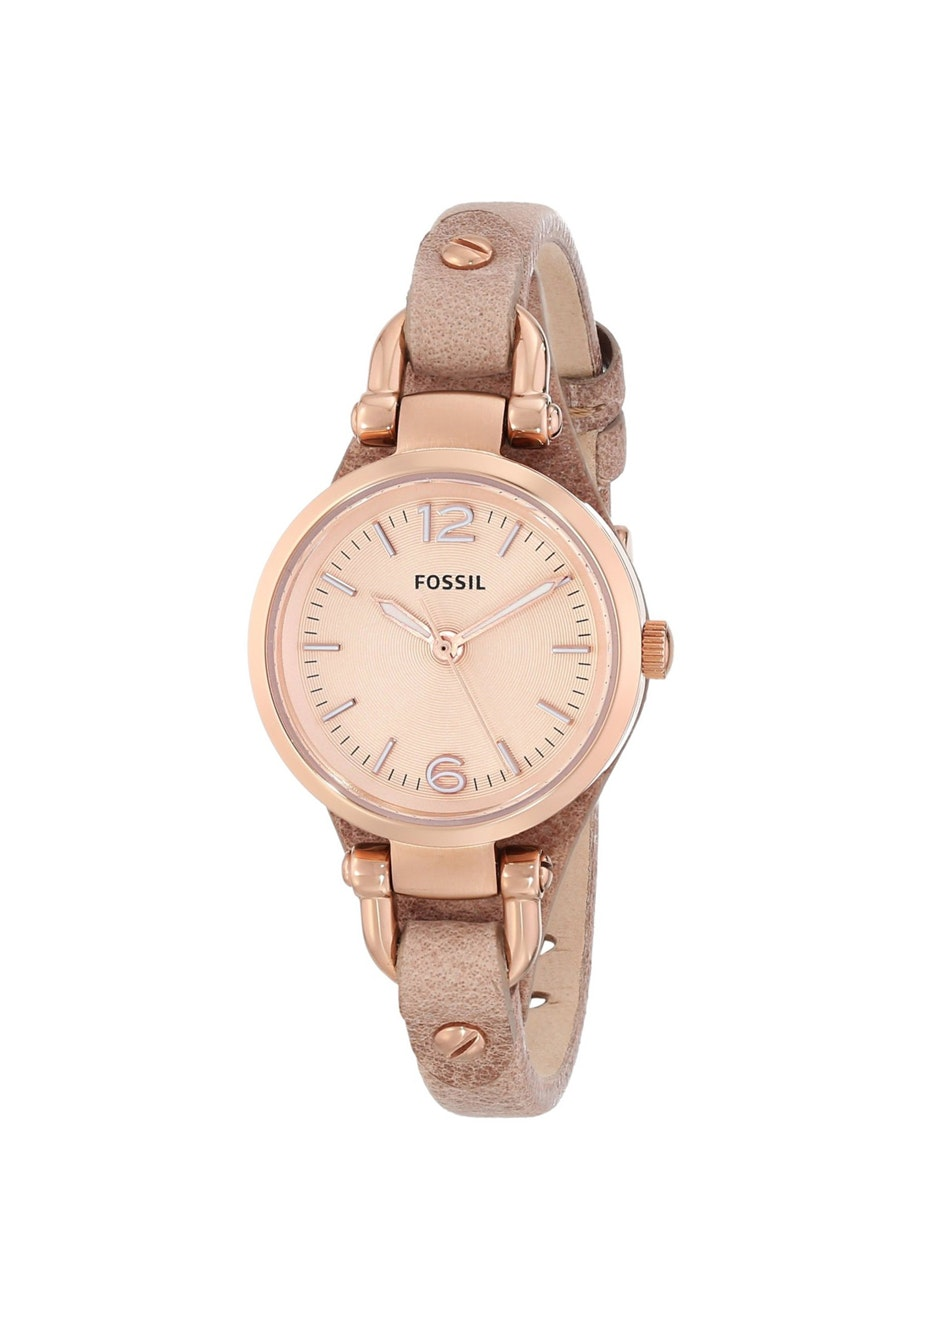 Fossil Women's Georgia Mini - Rose Gold/Light Brown